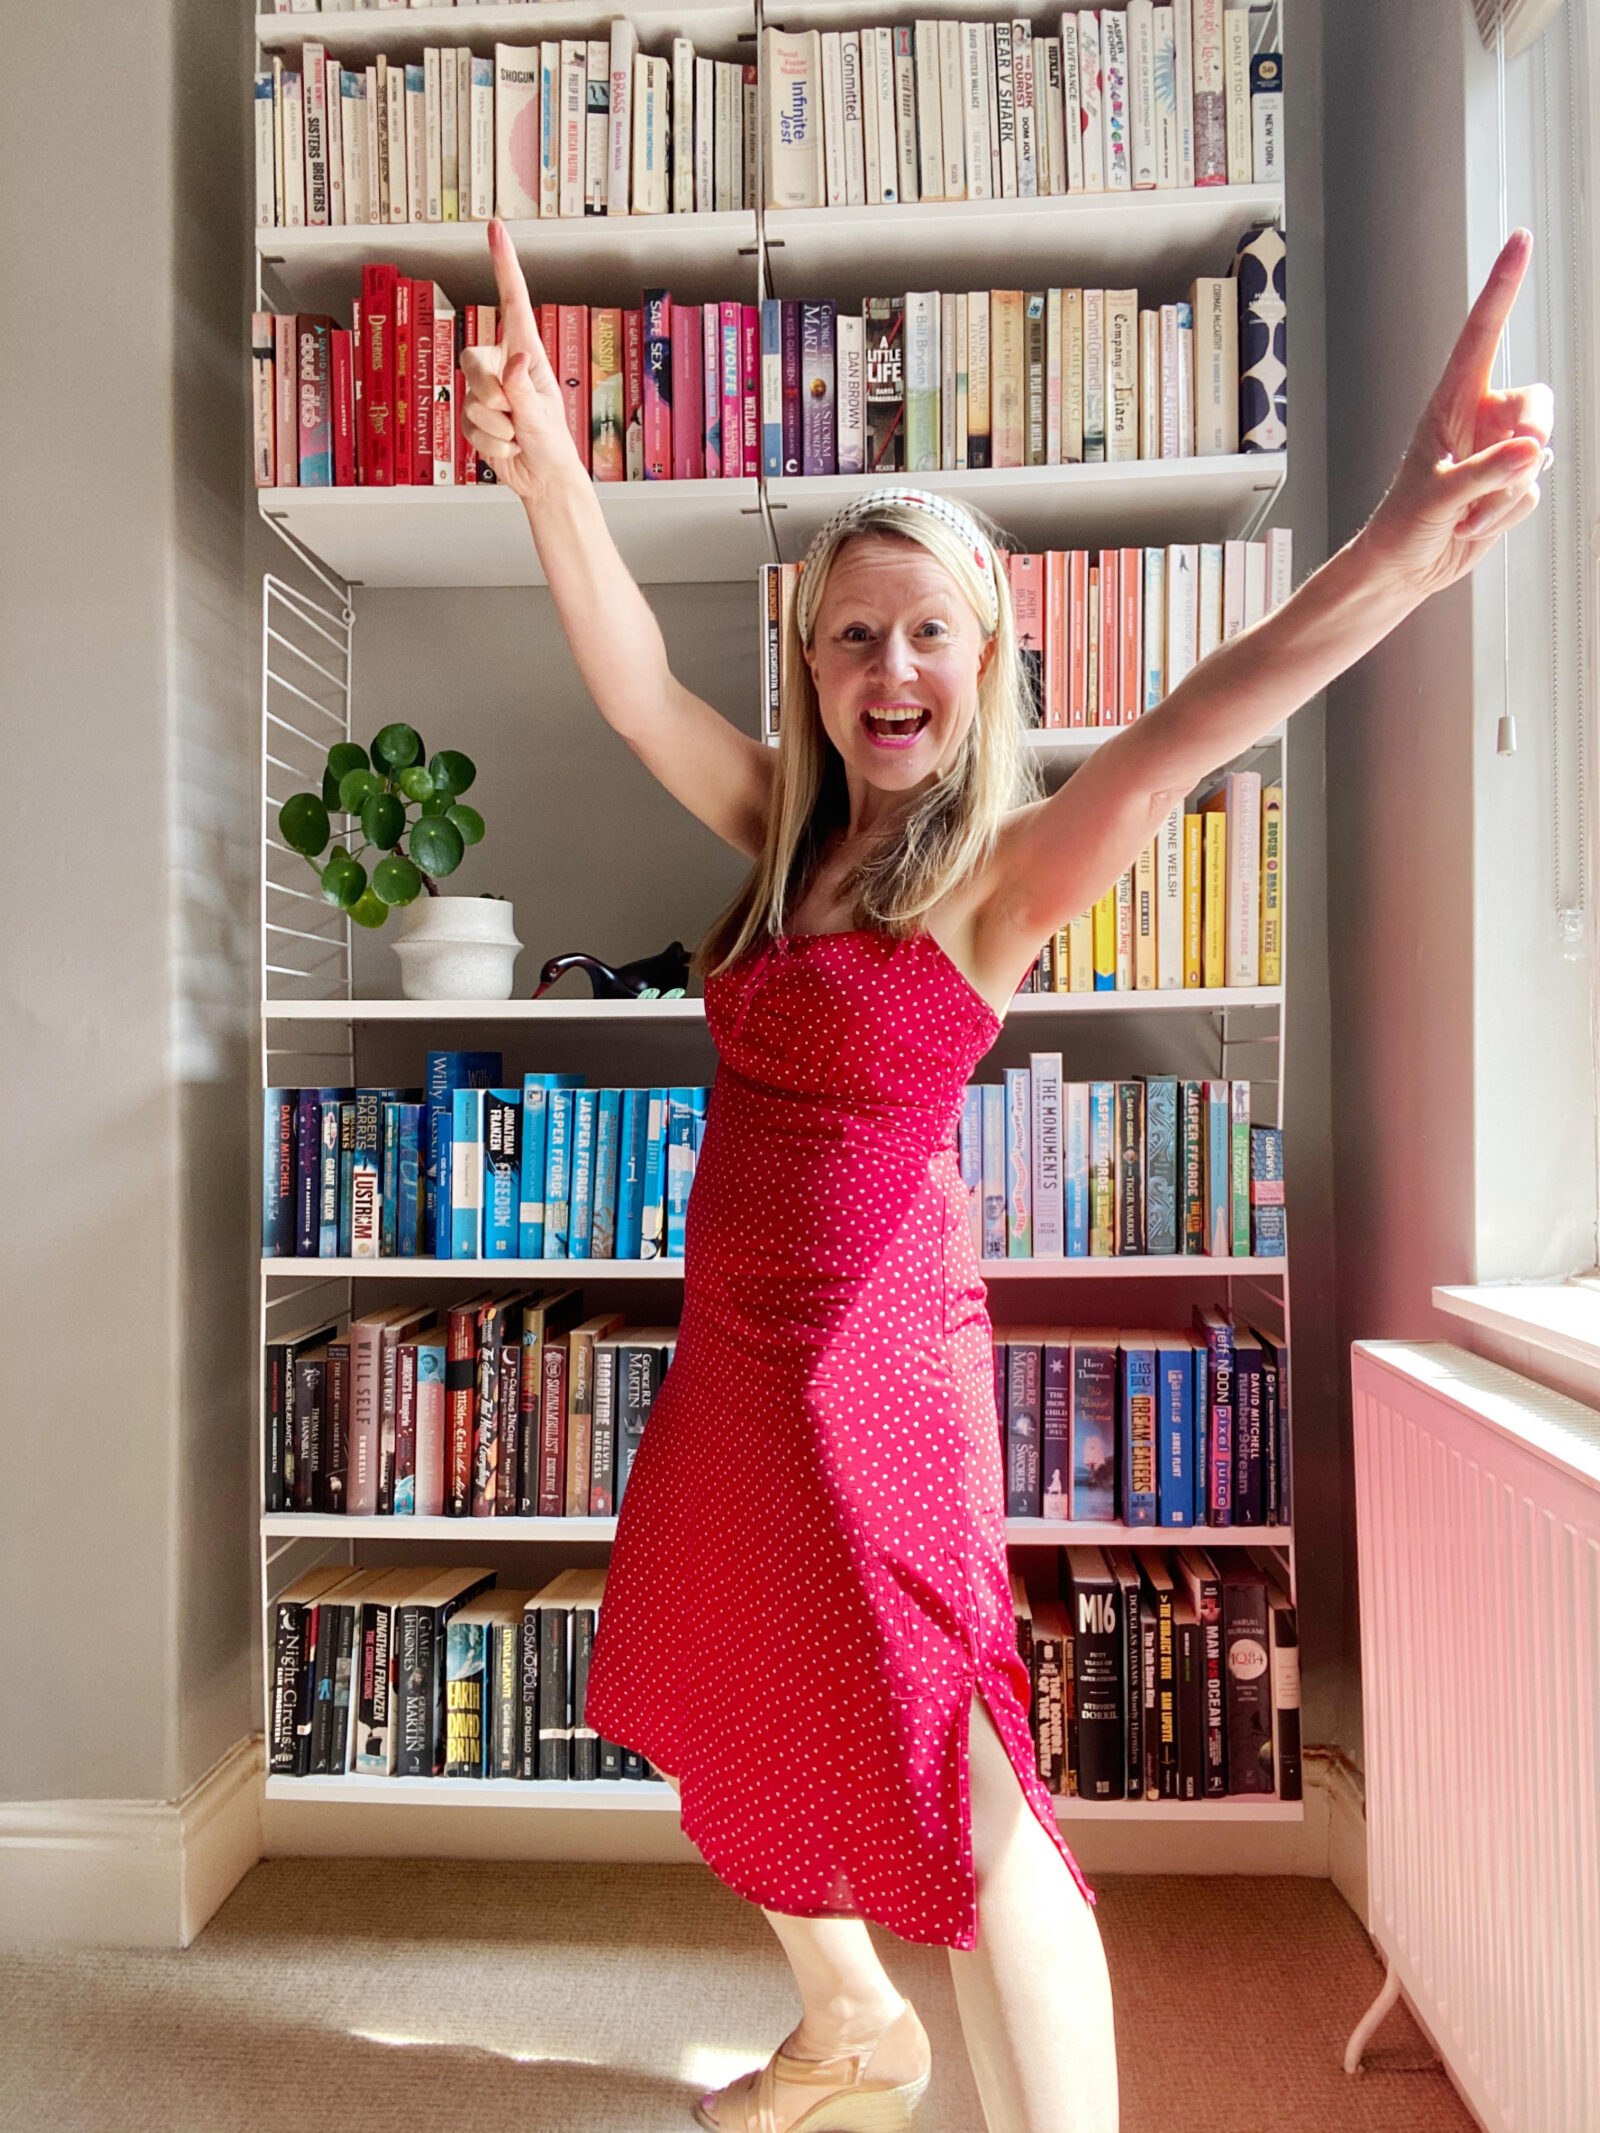 katya willems Instagram trainer in a red dress in front of a colourful bookcase.